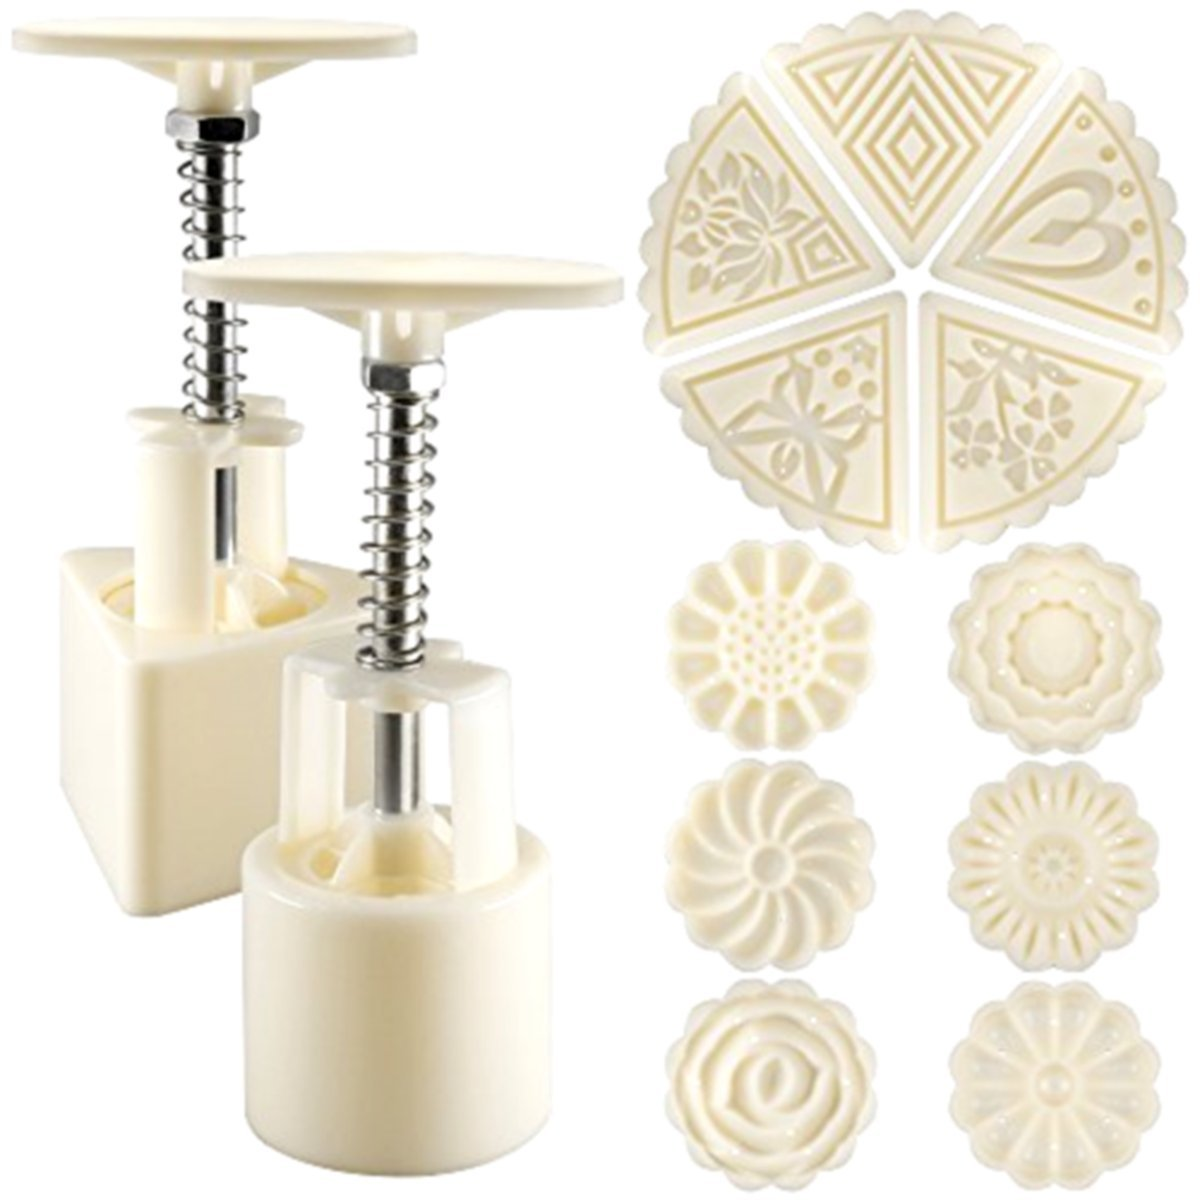 KINGSO Mid-Autumn Festival Mooncake Mold Hand Pressure Mould DIY Cake Decoration Tool (11 Flower Stamps)